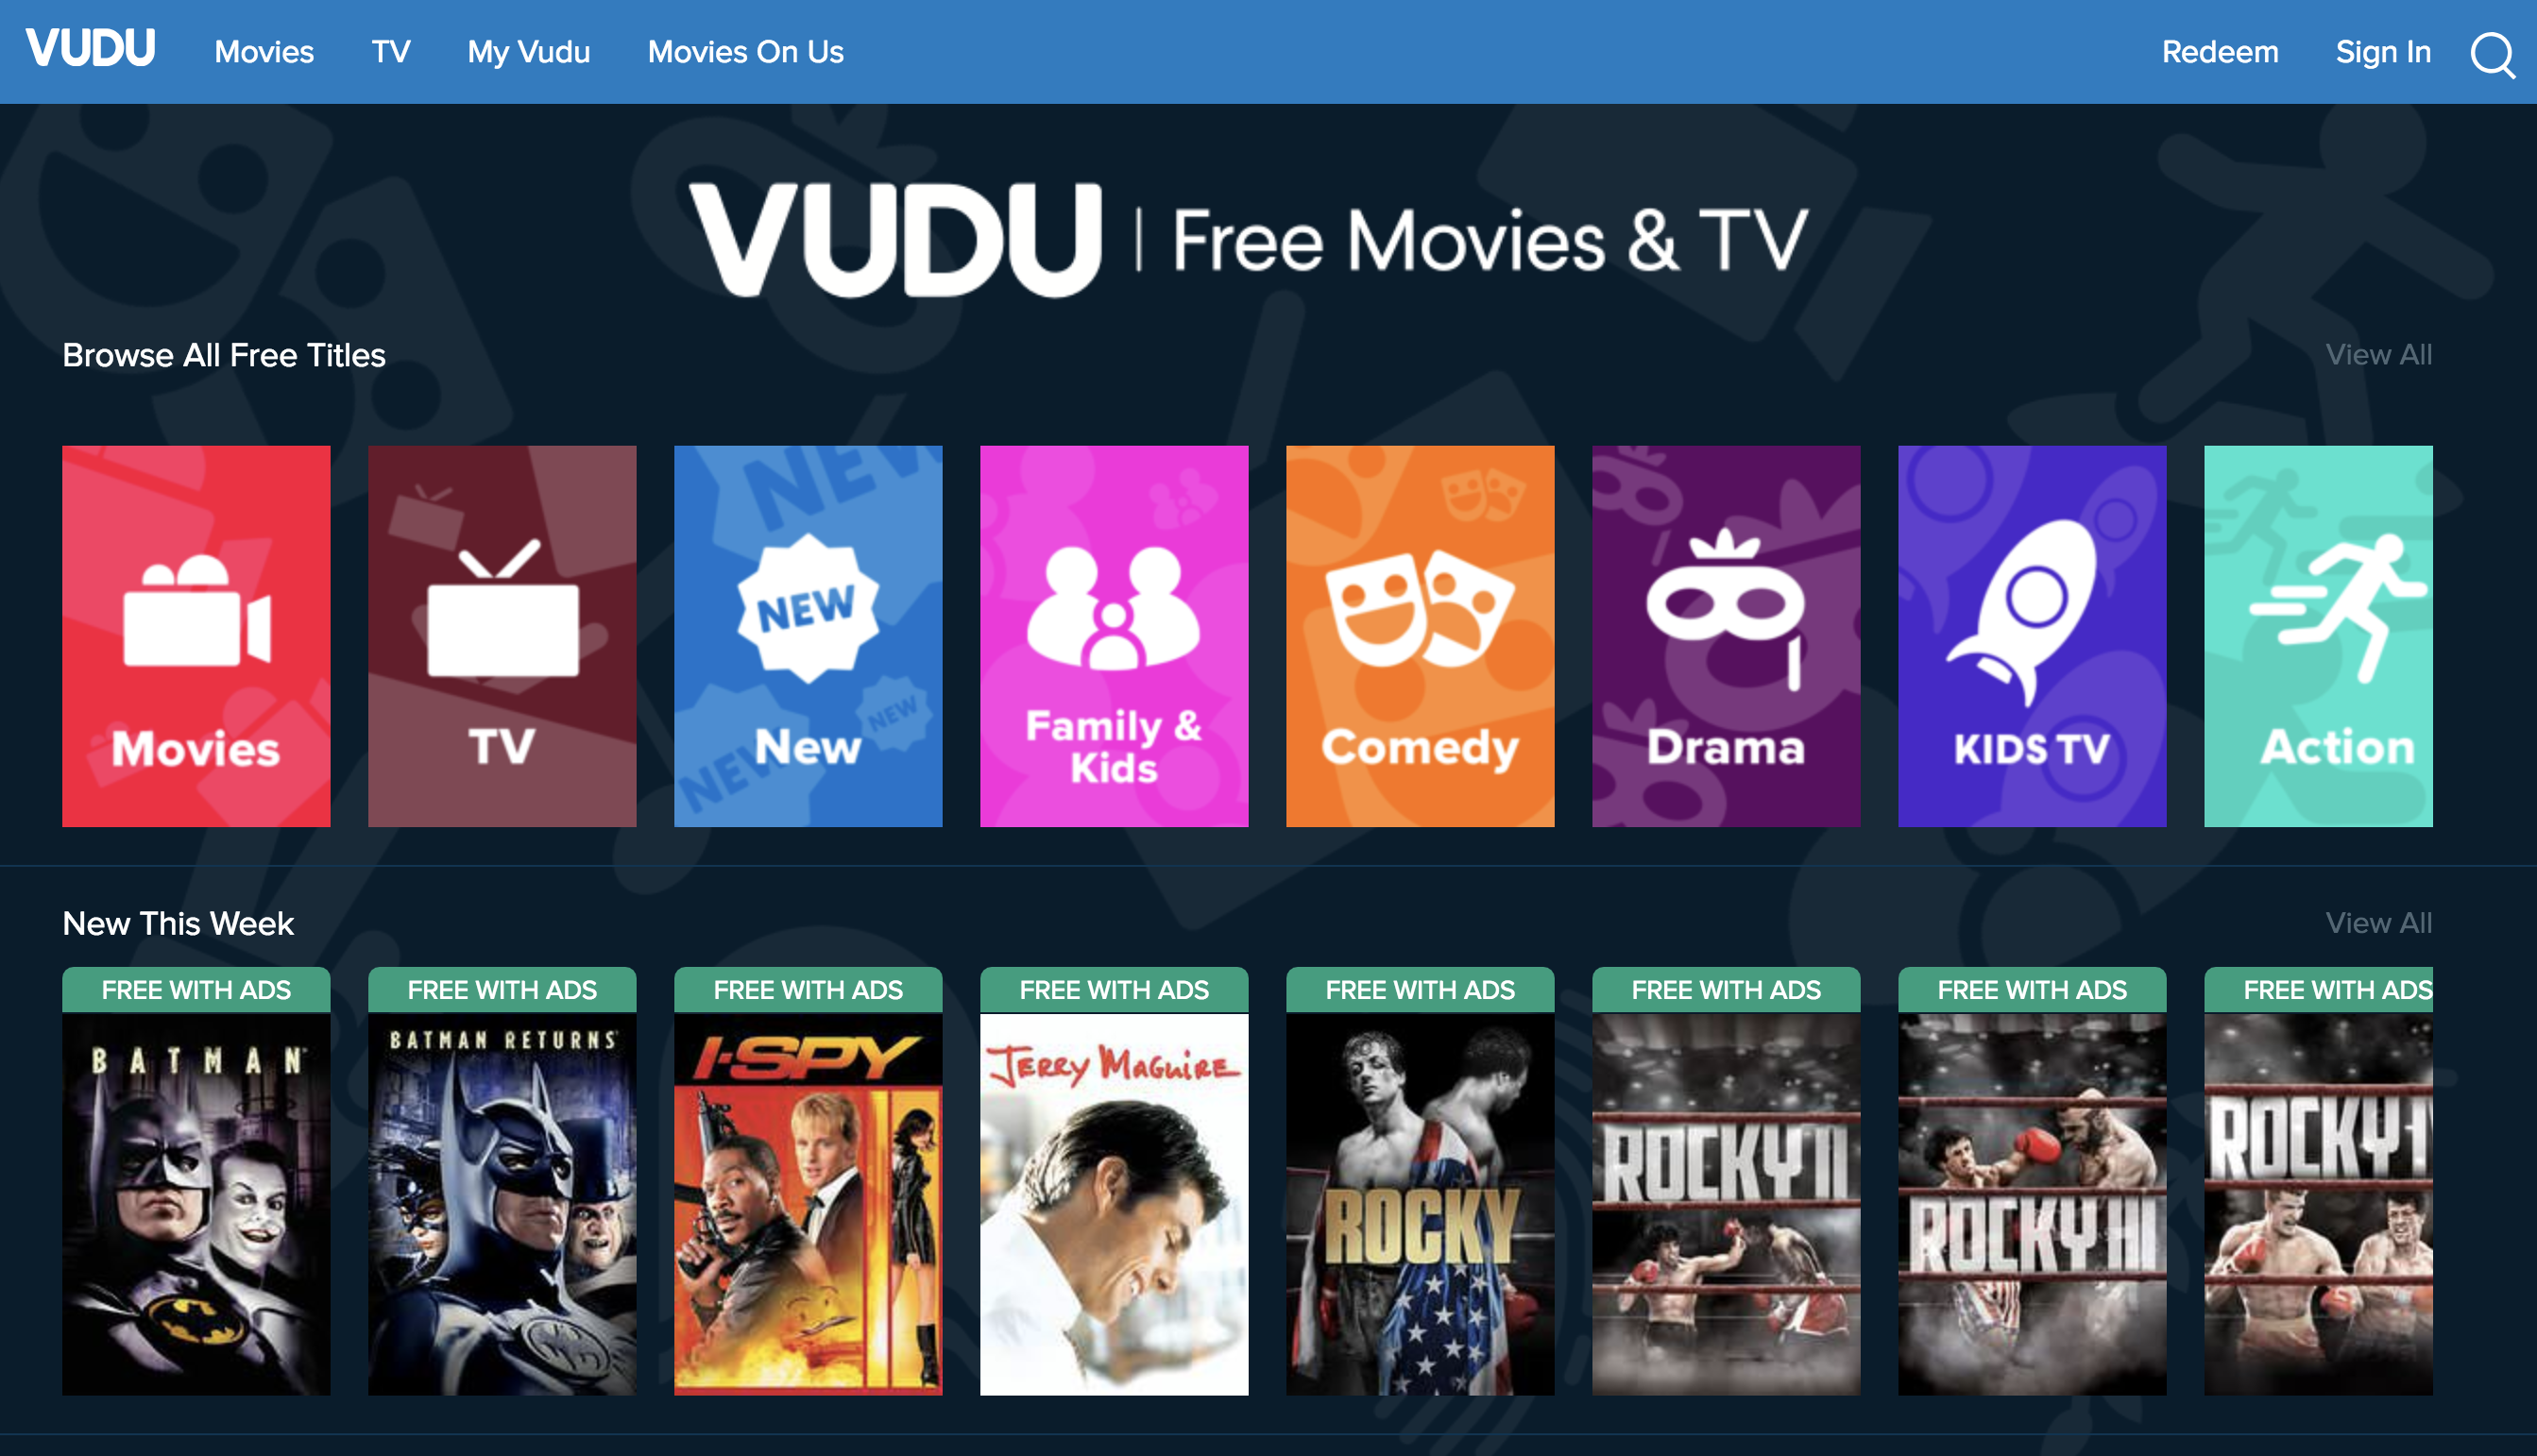 Vudu free movies & tv shows online streaming platform